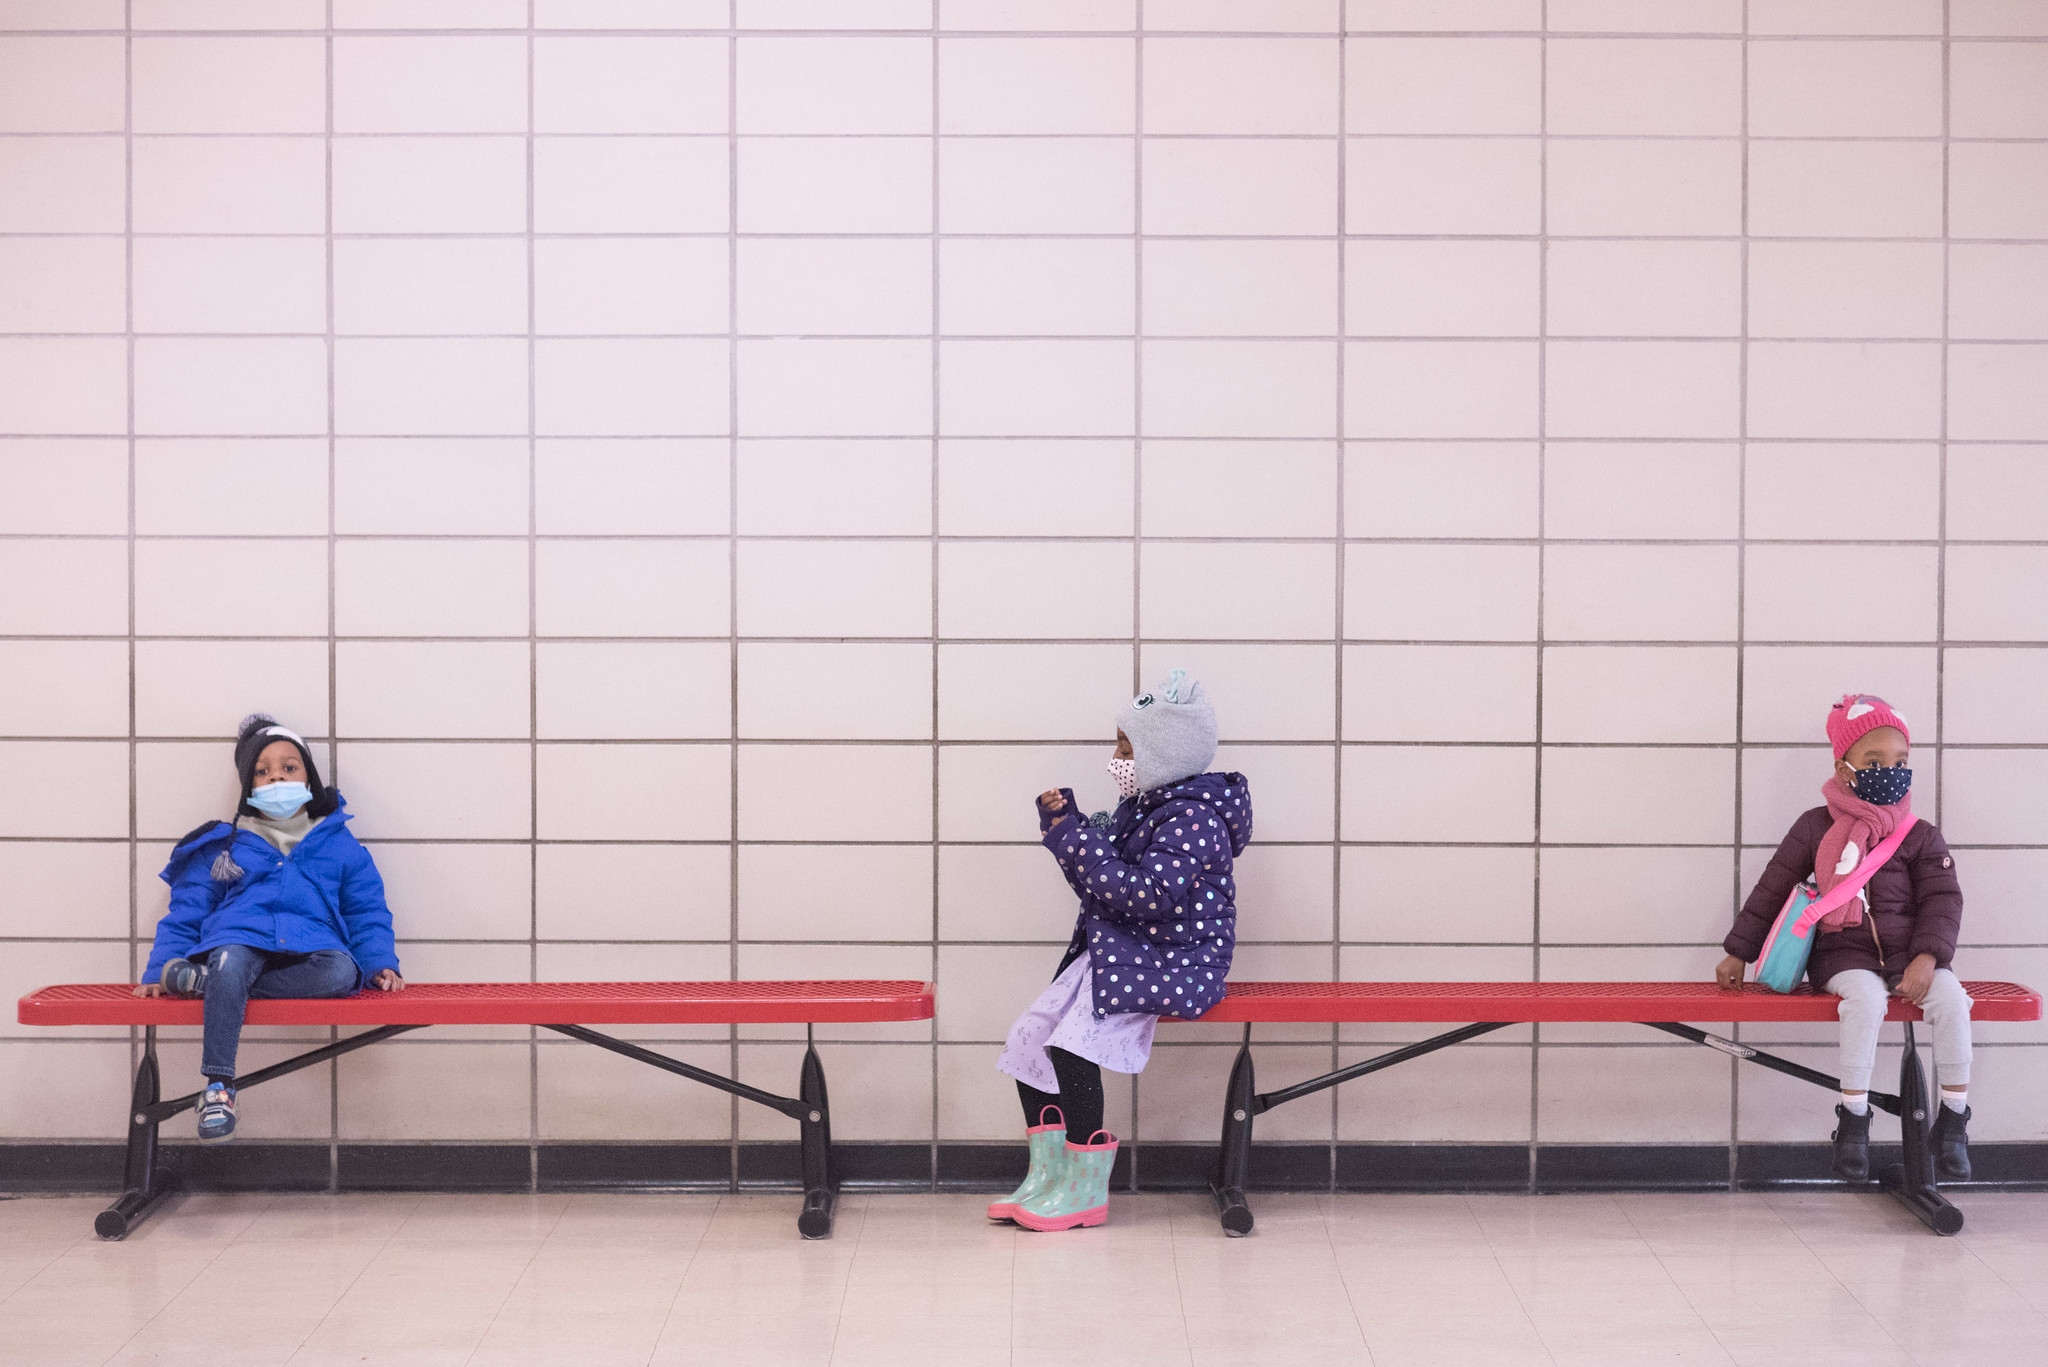 Preschoolers sit socially distanced at Phyl's Academy in Brooklyn on March 23, 2021.